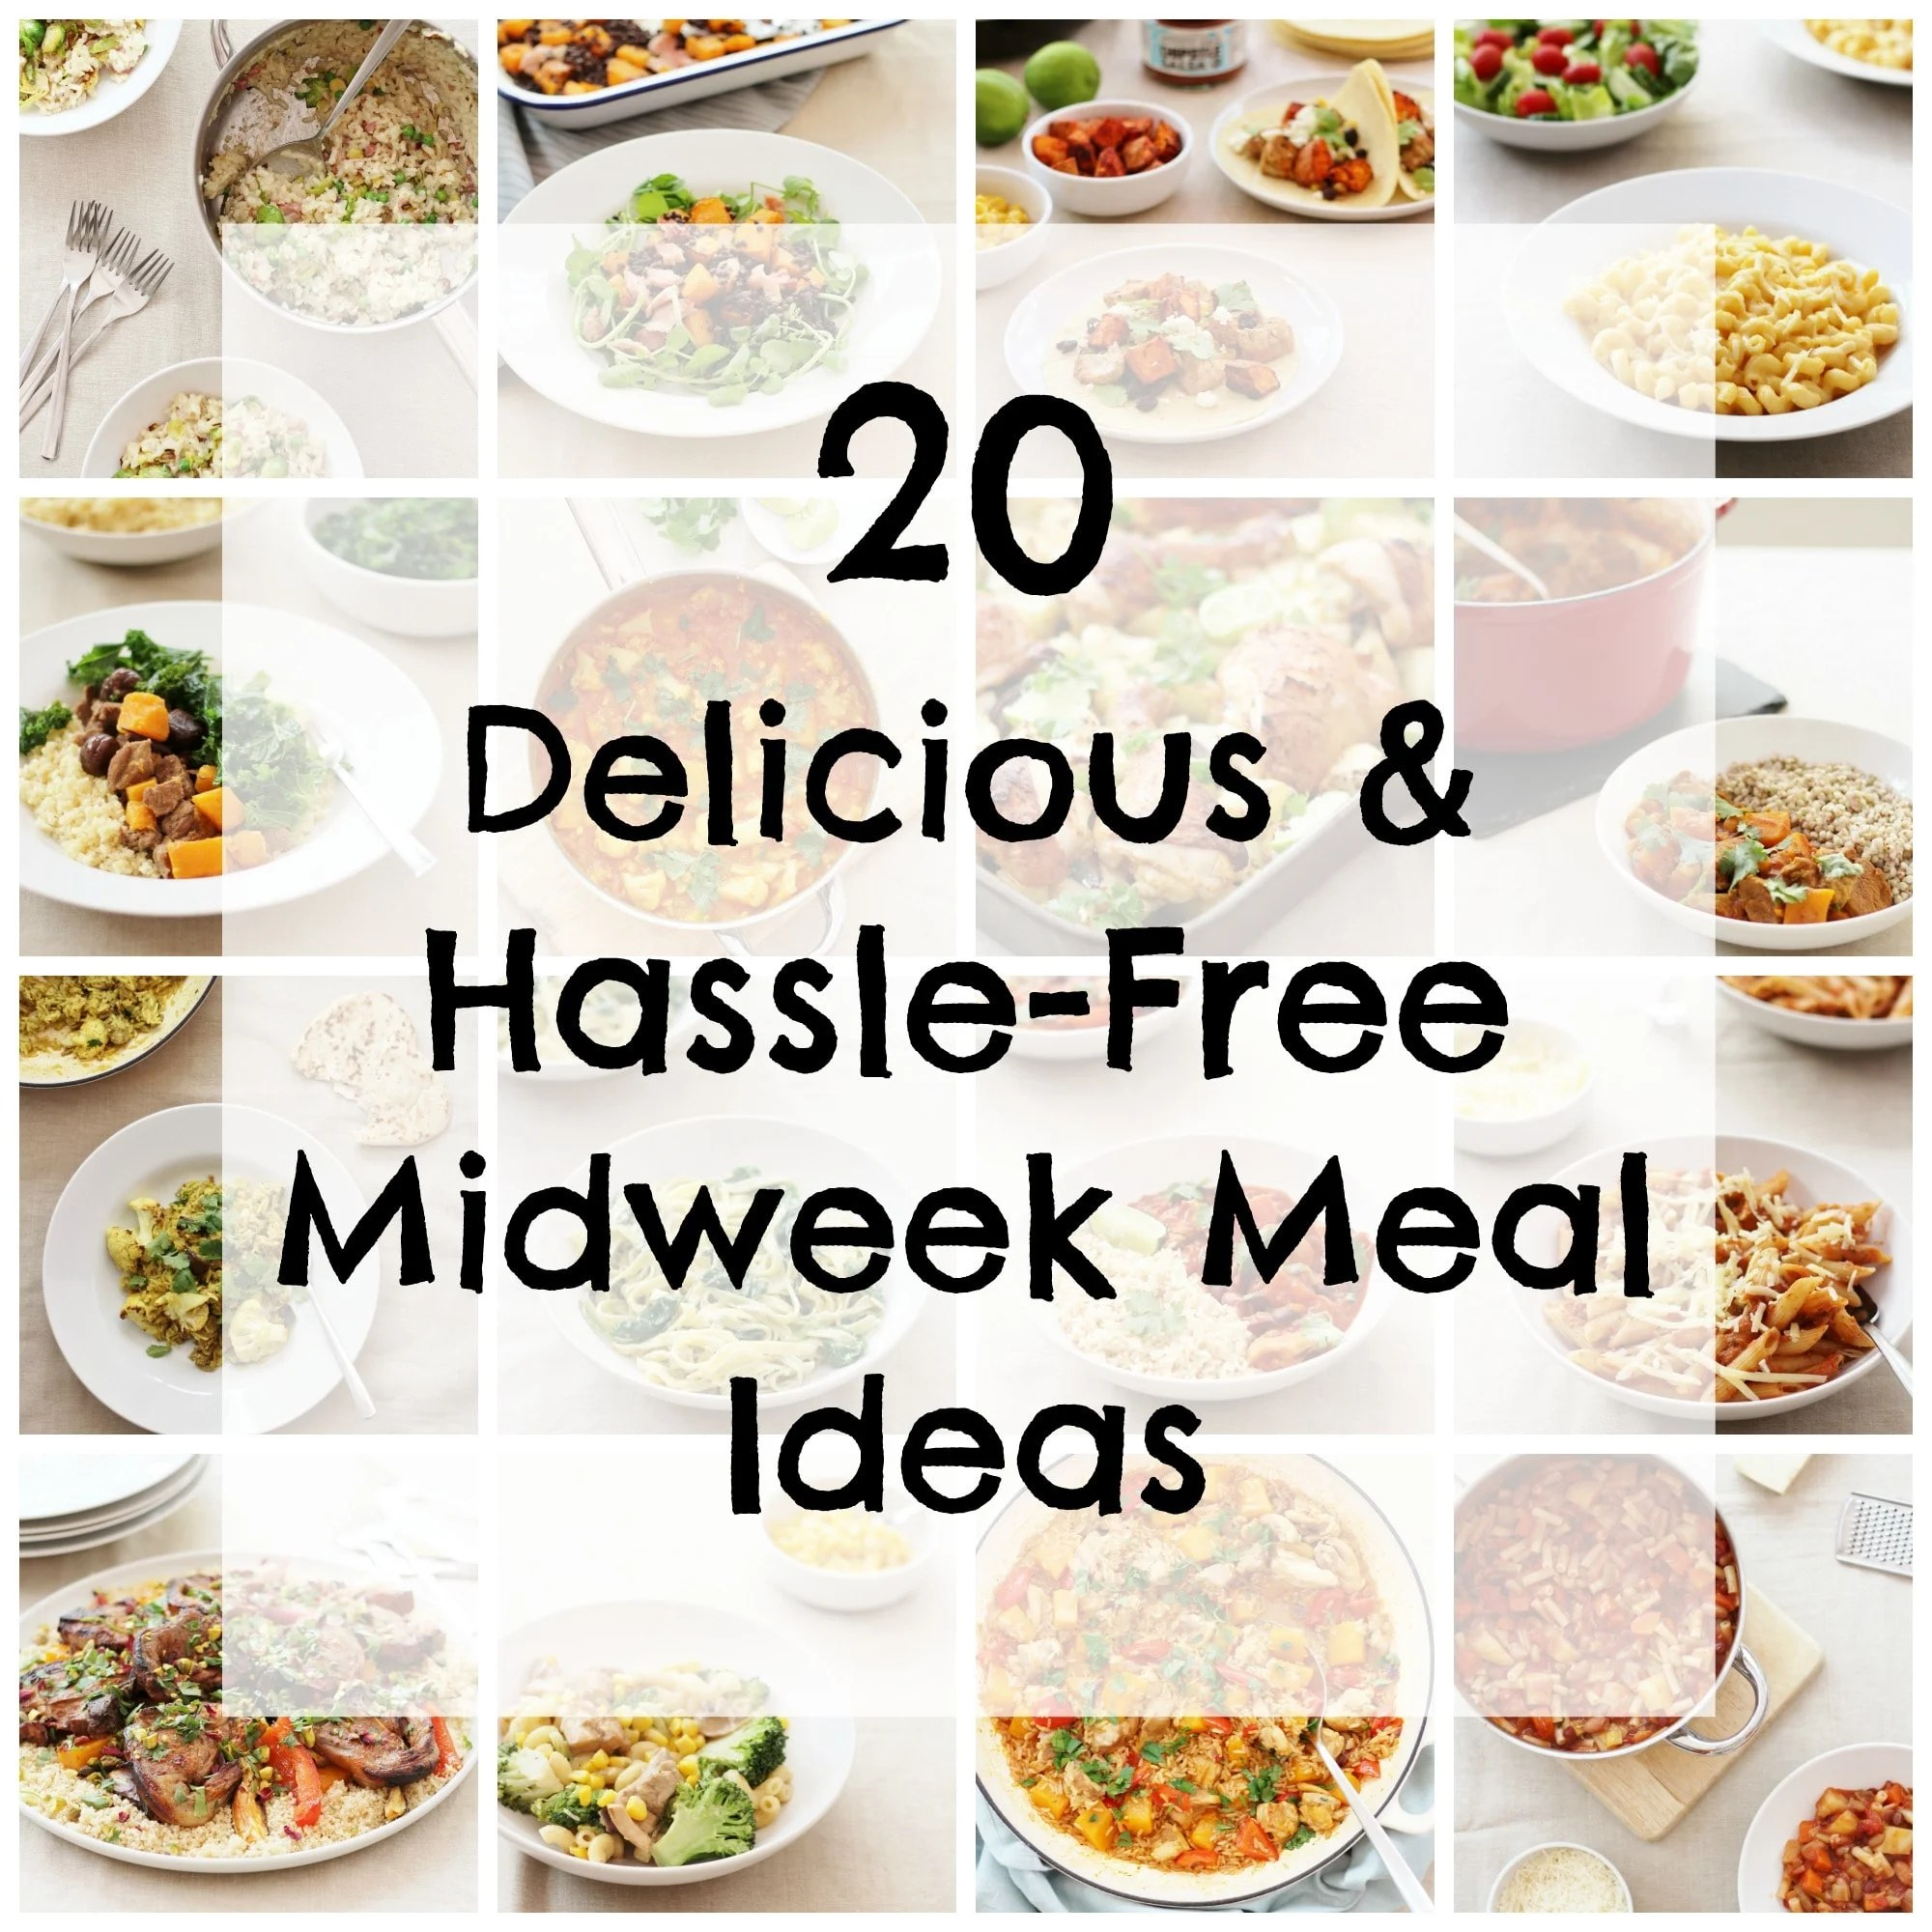 20 Delicious and Hassle Free Midweek Meal Ideas - Easy Peasy Foodie